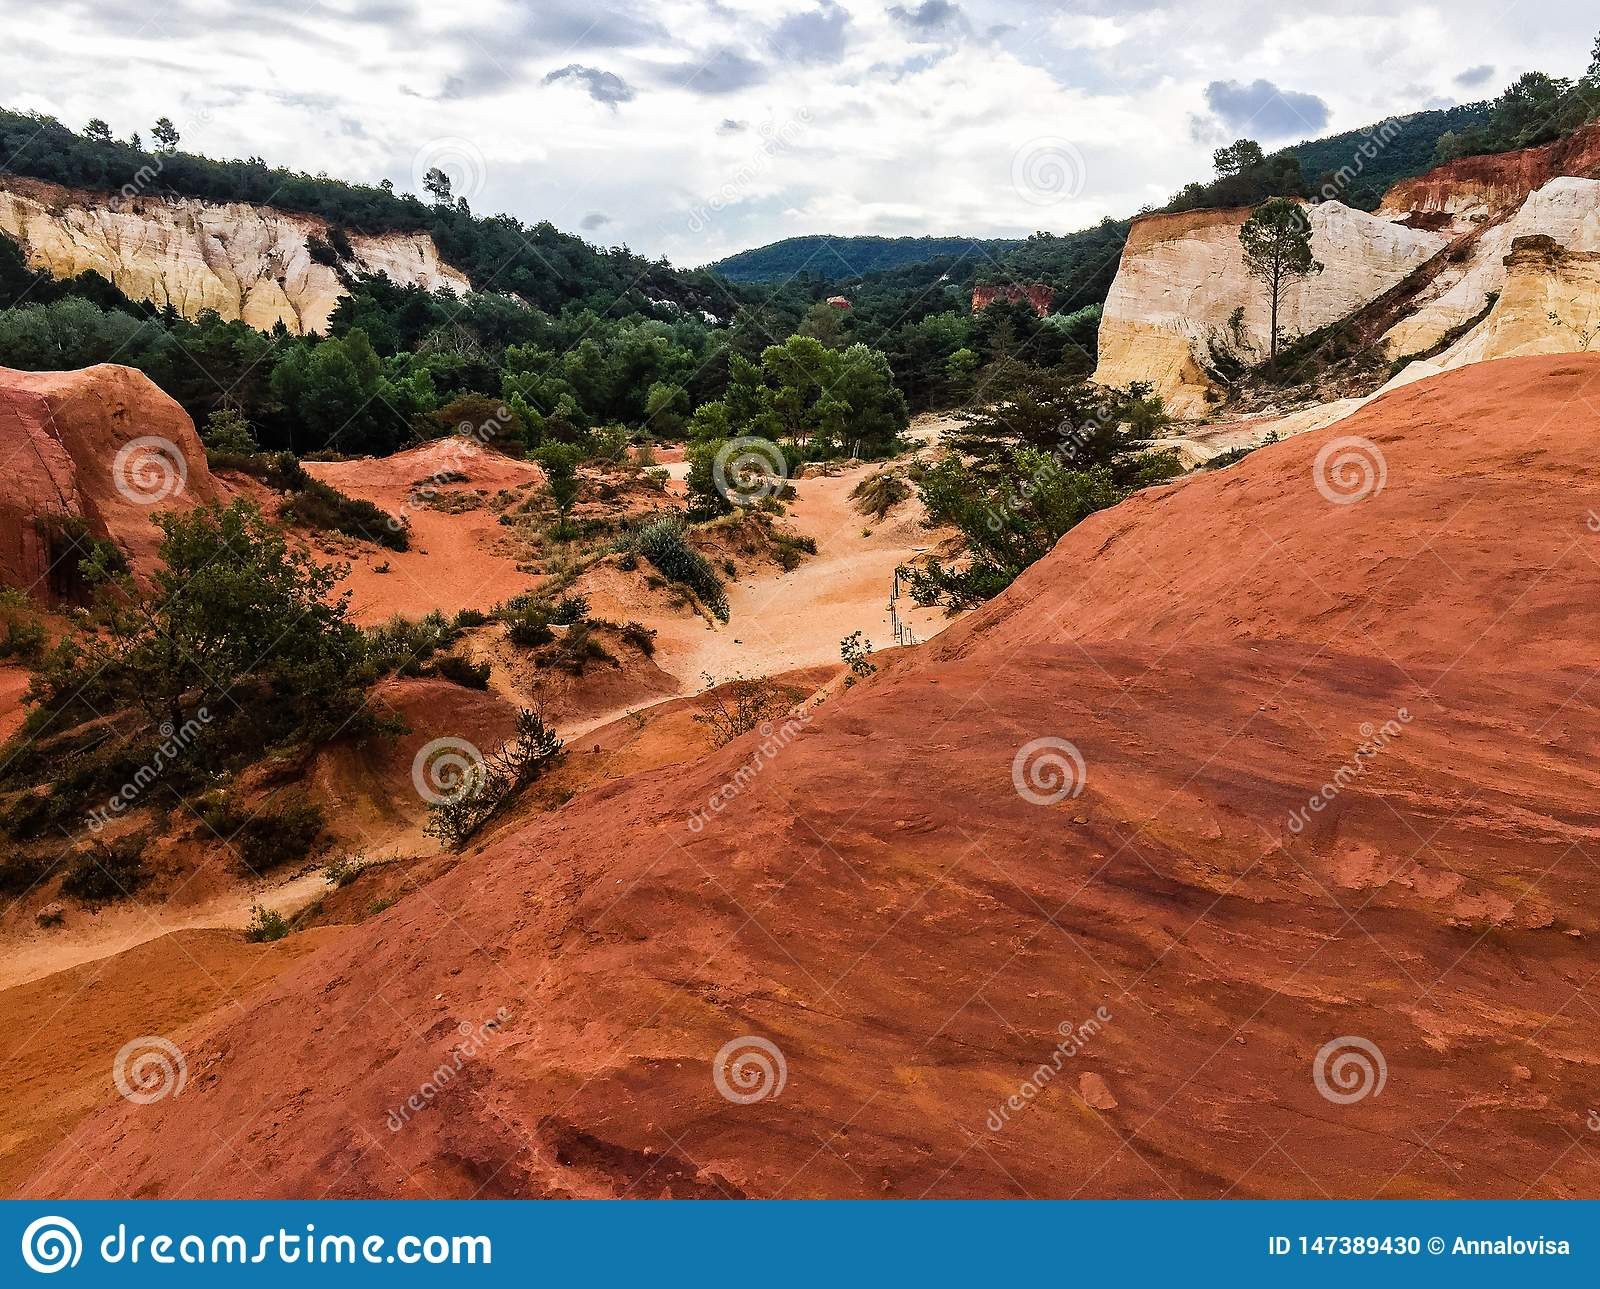 Nature reserve with red sand in France